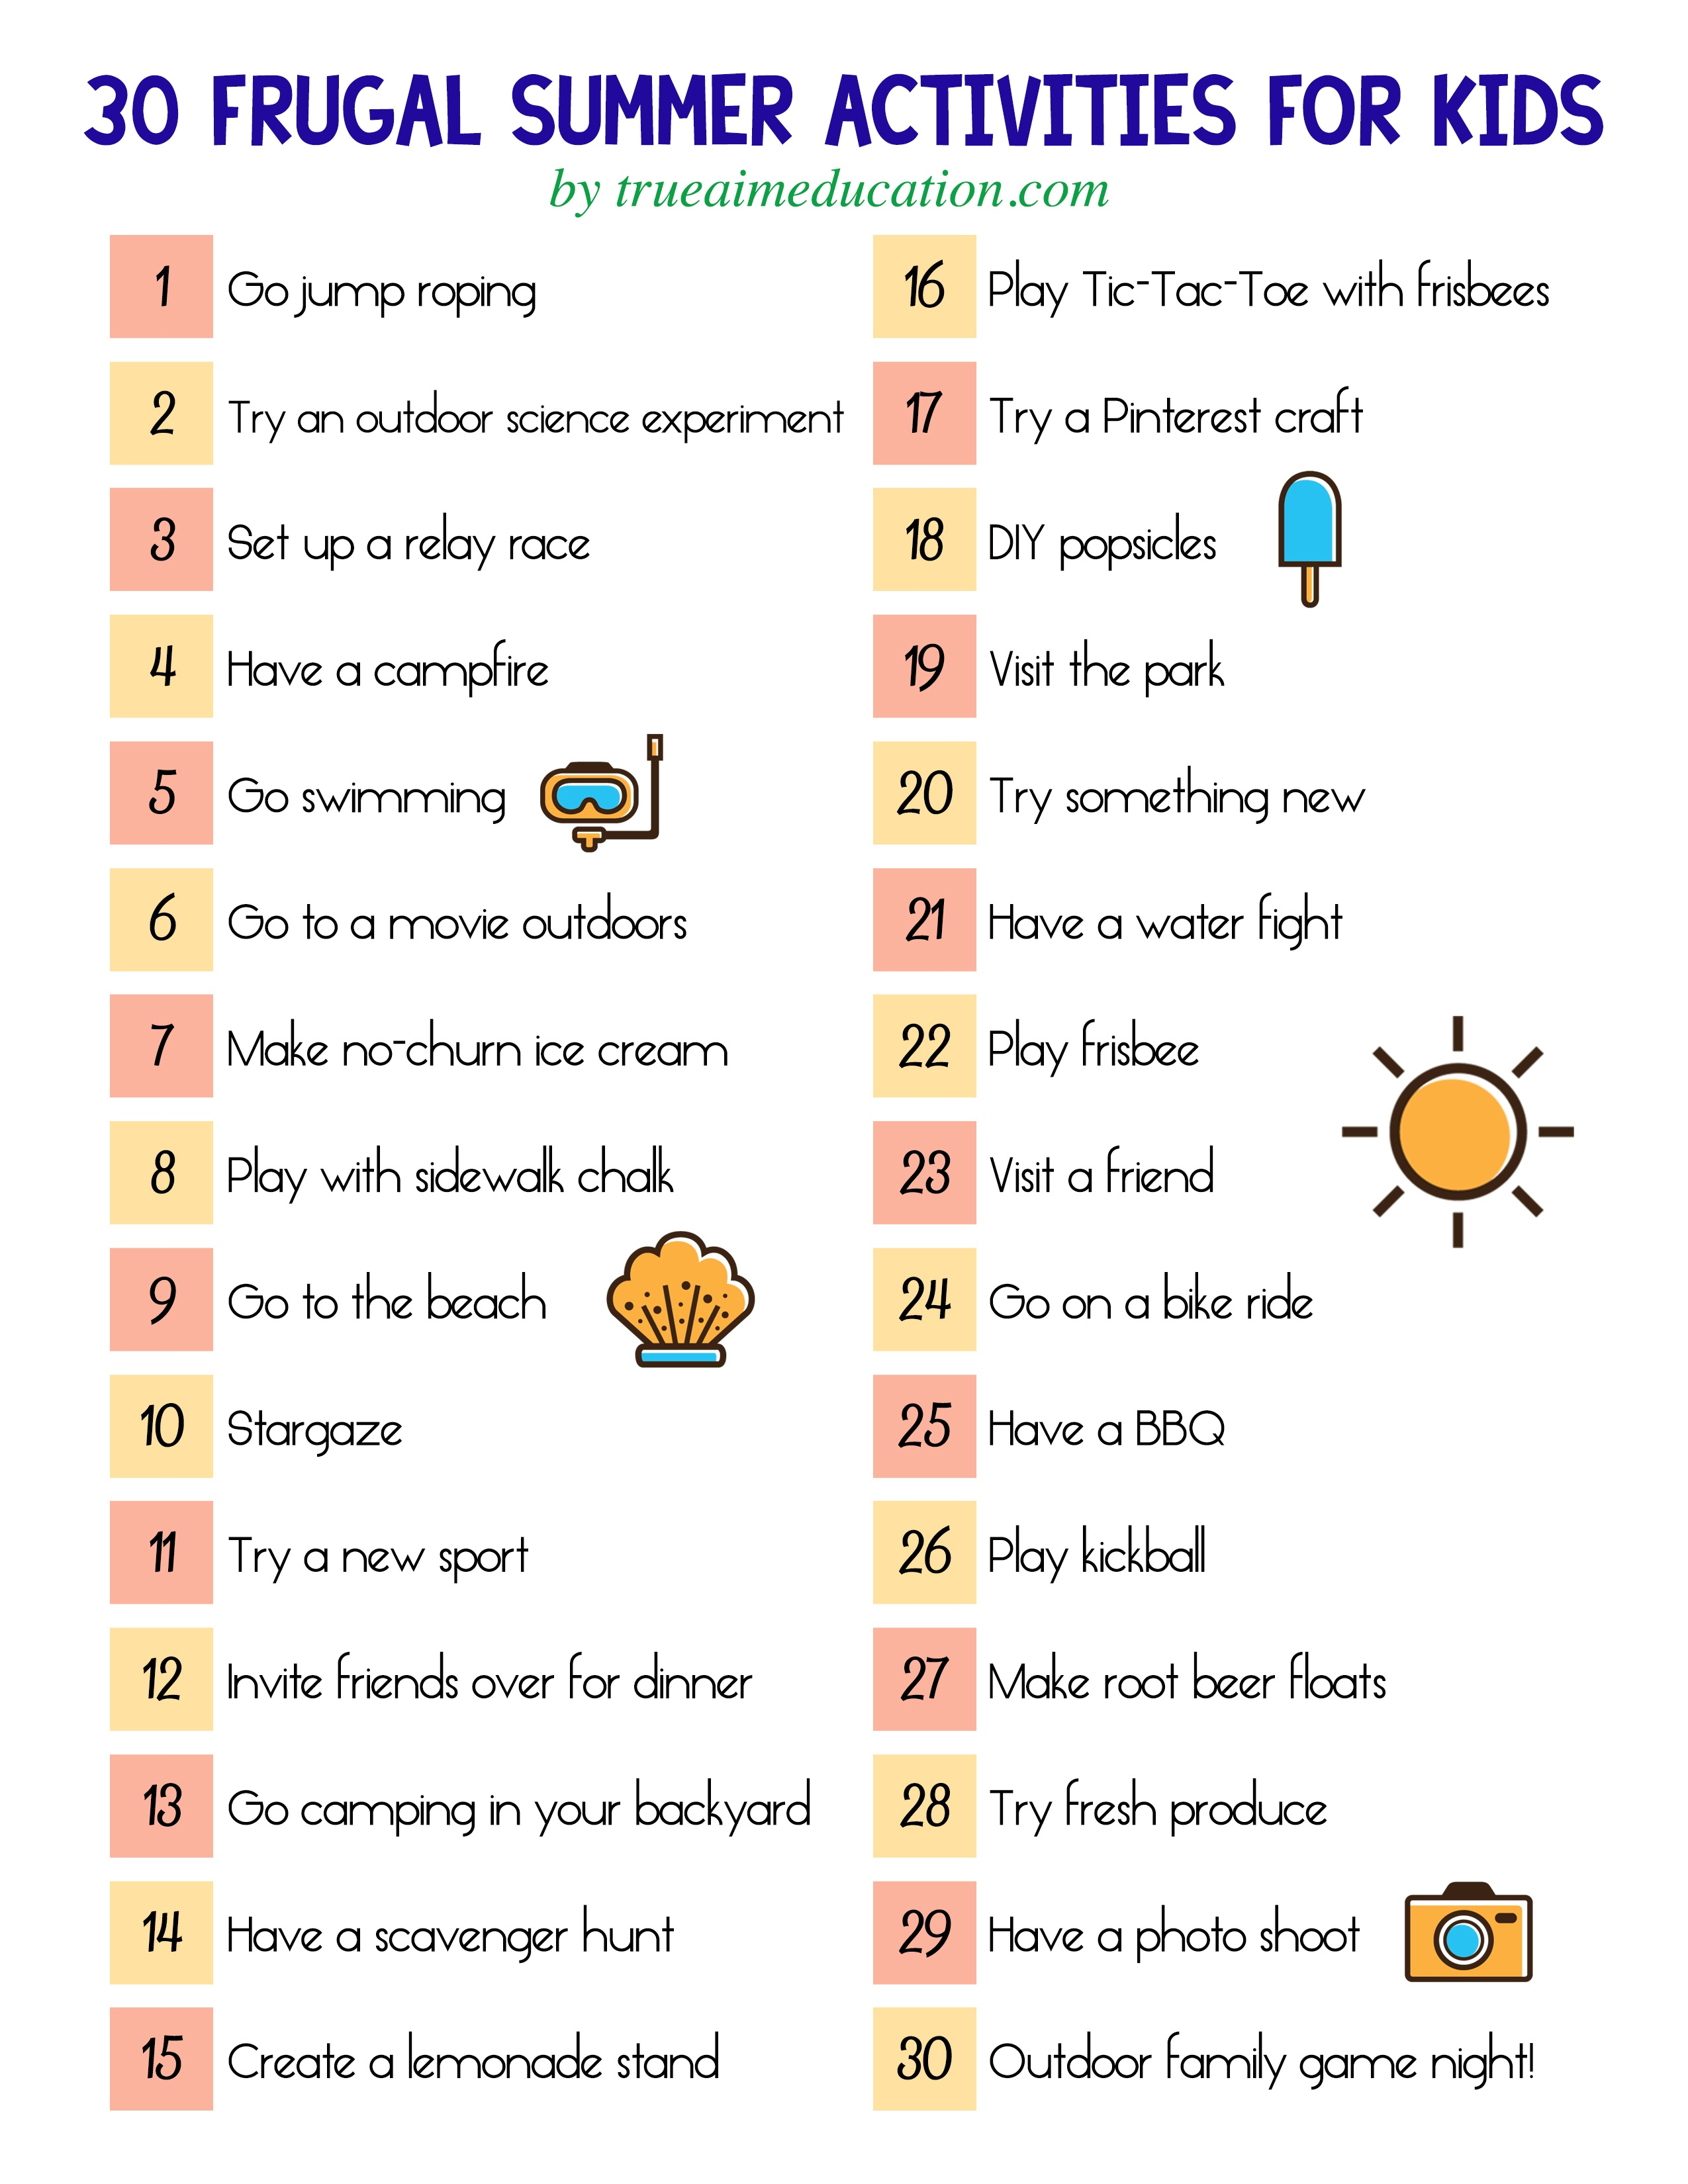 30 Frugal Summer Activities + A Free Printable - Free Printable Summer Games